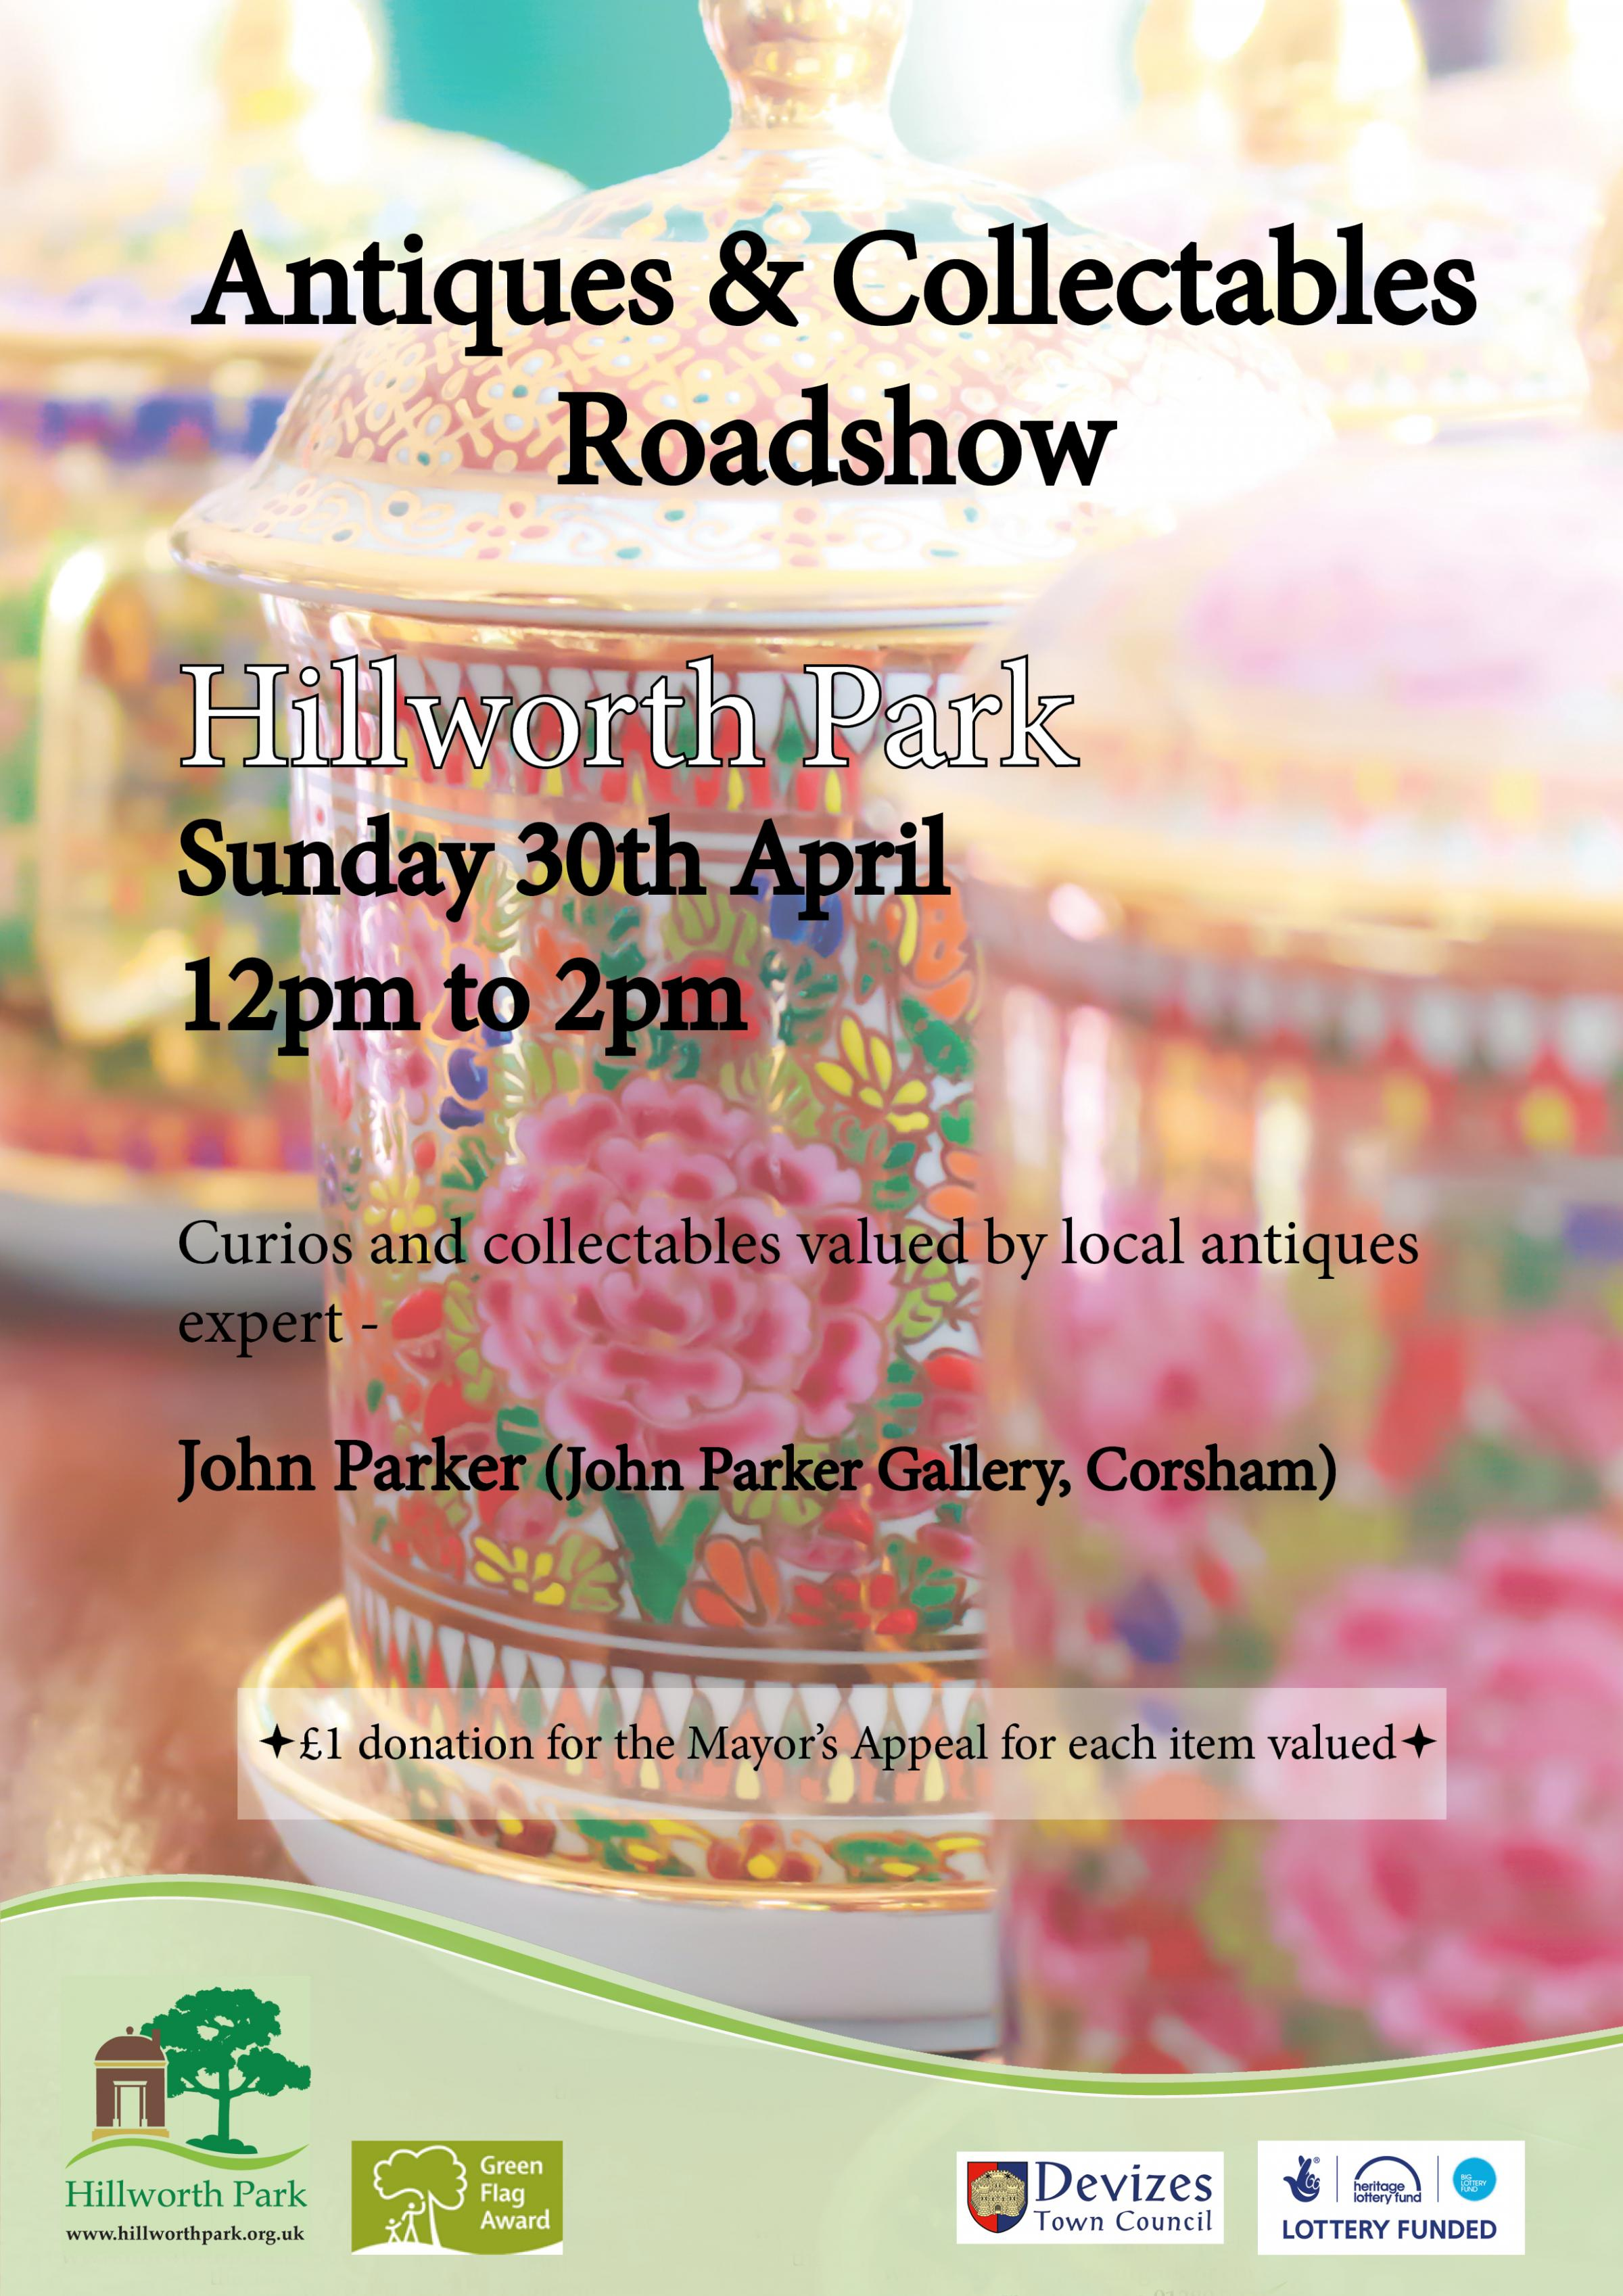 Antiques & Collectables Roadshow